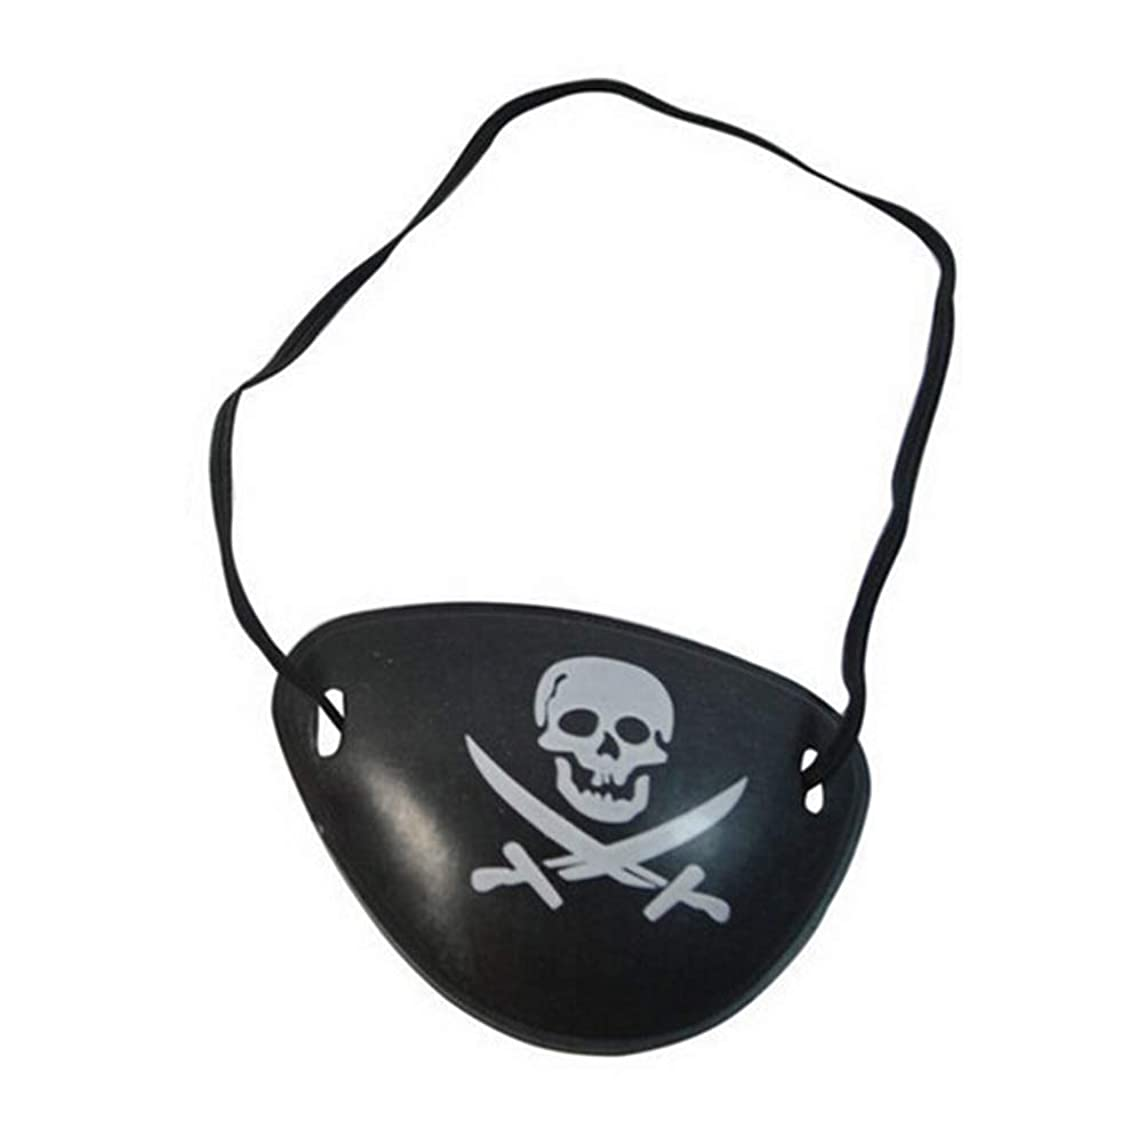 Toys Toys Toys - Plastic Pirate Eye Patch Black Party Favors Bag Skull Crossbone Halloween Birthday Costume Kids Toy - Dead Boys Dolls Kids Nine-year-olds 11-year-olds Living Toys Years 1